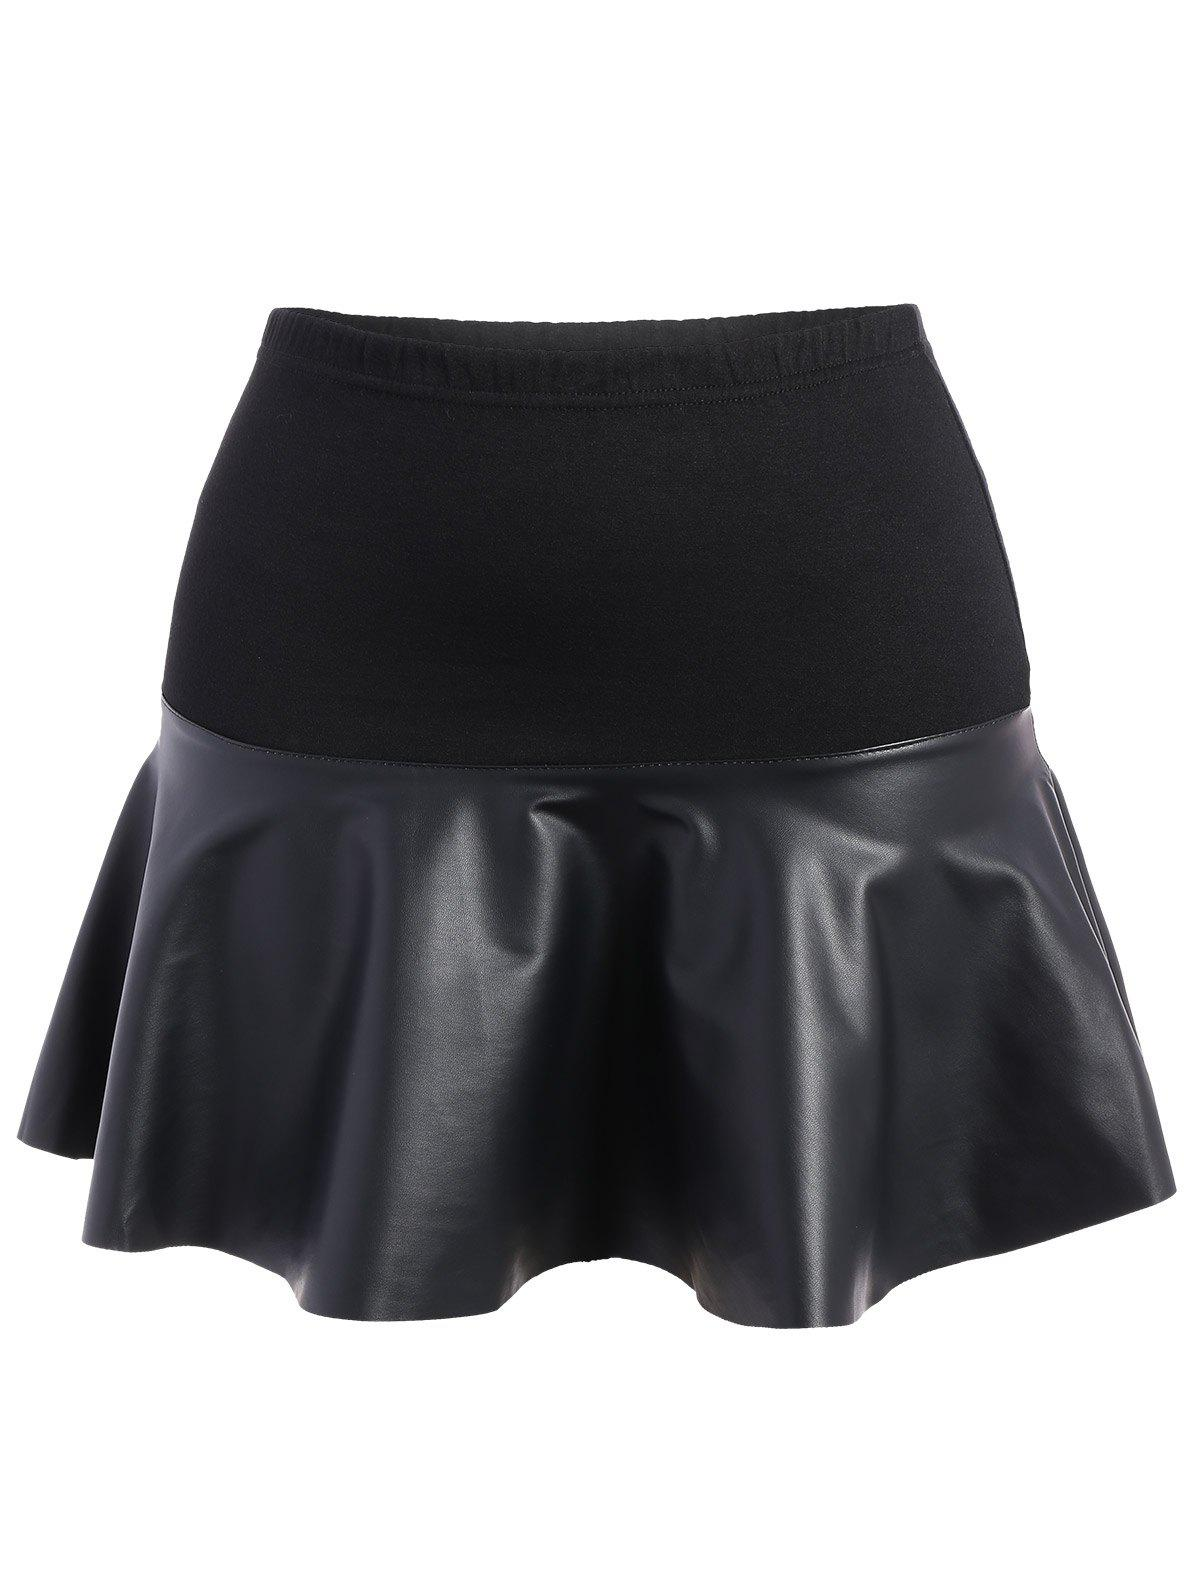 Plus Size Faux Leather Panel Skirt - BLACK 4XL